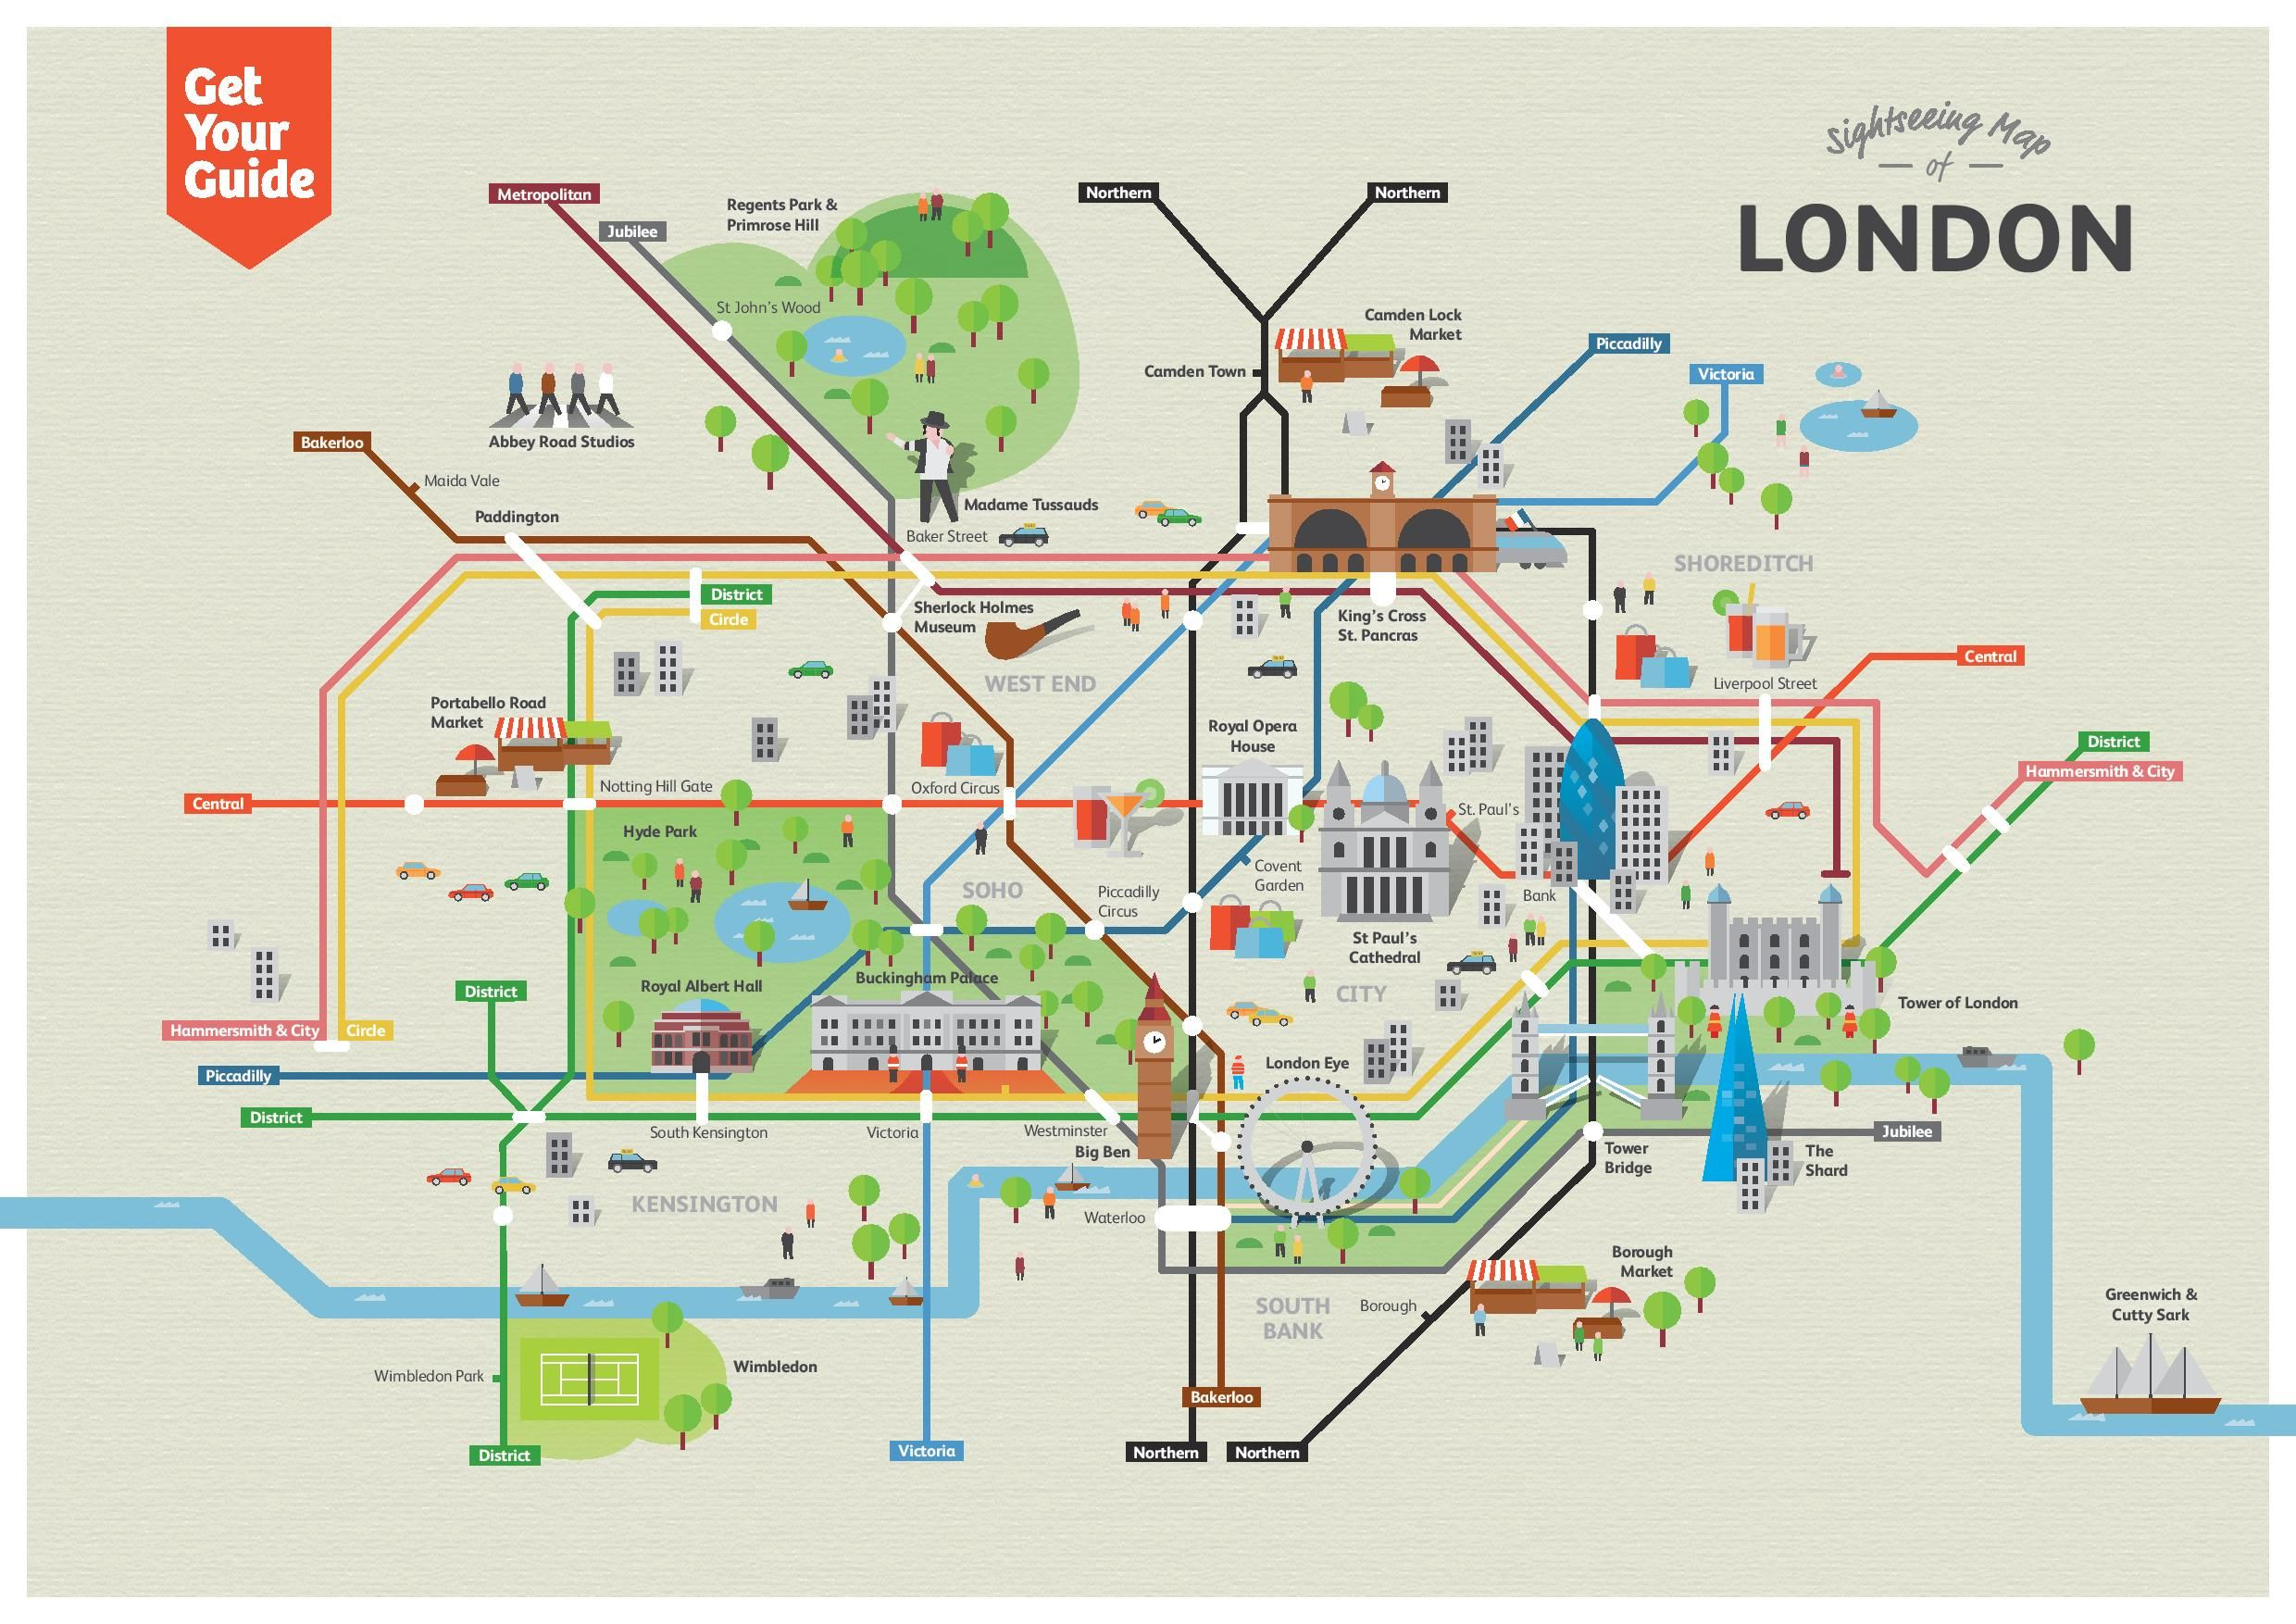 Sightseeing Map Of London.Sightseeing Map Of London Attractions In 2019 London London